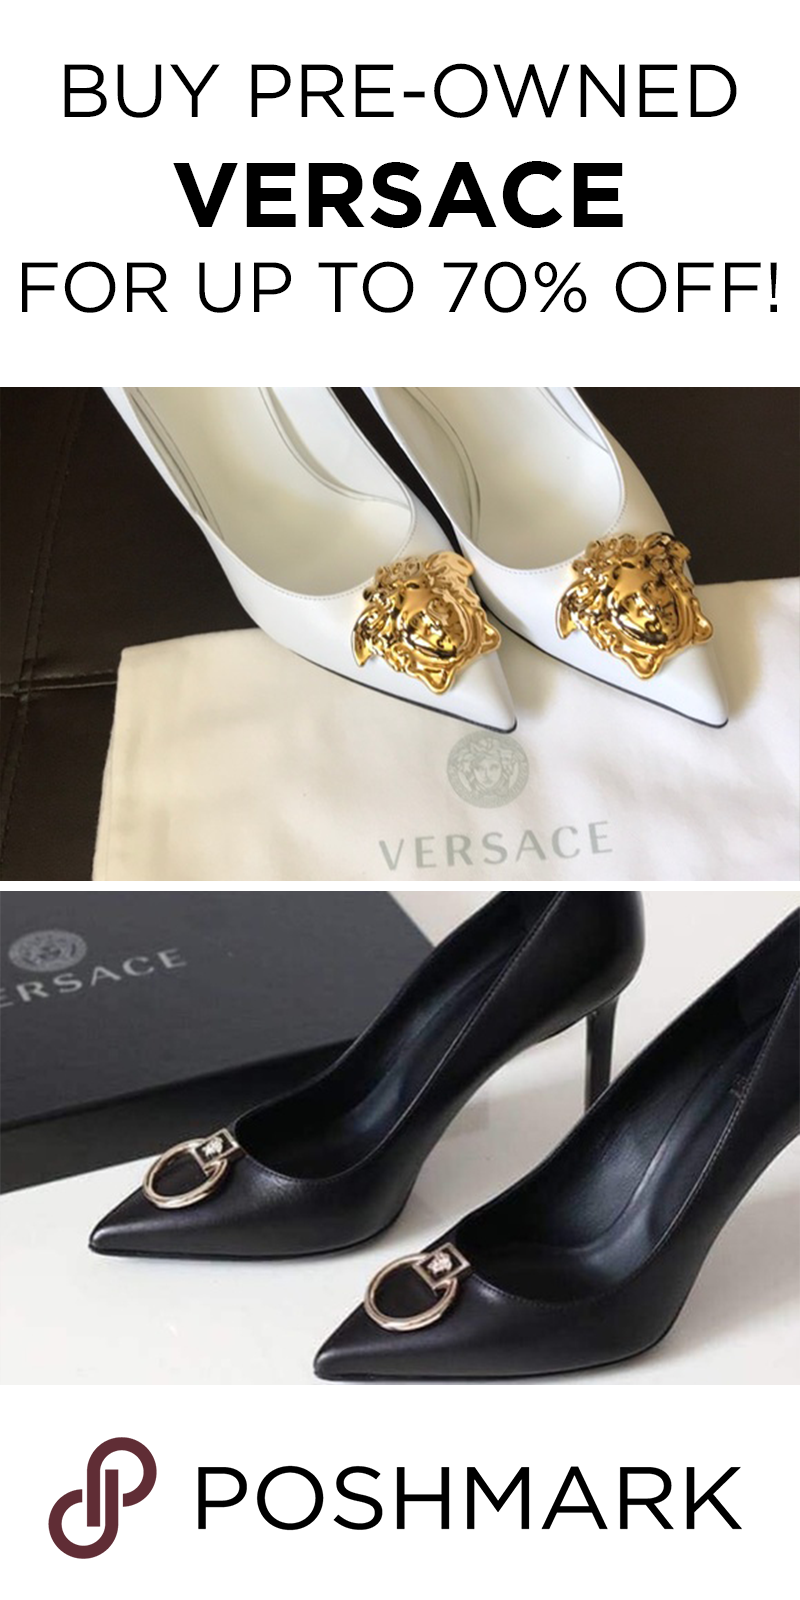 db49b1db923 Get authentic Versace shoes   heels for cheap on Poshmark. Download the app  to shop!